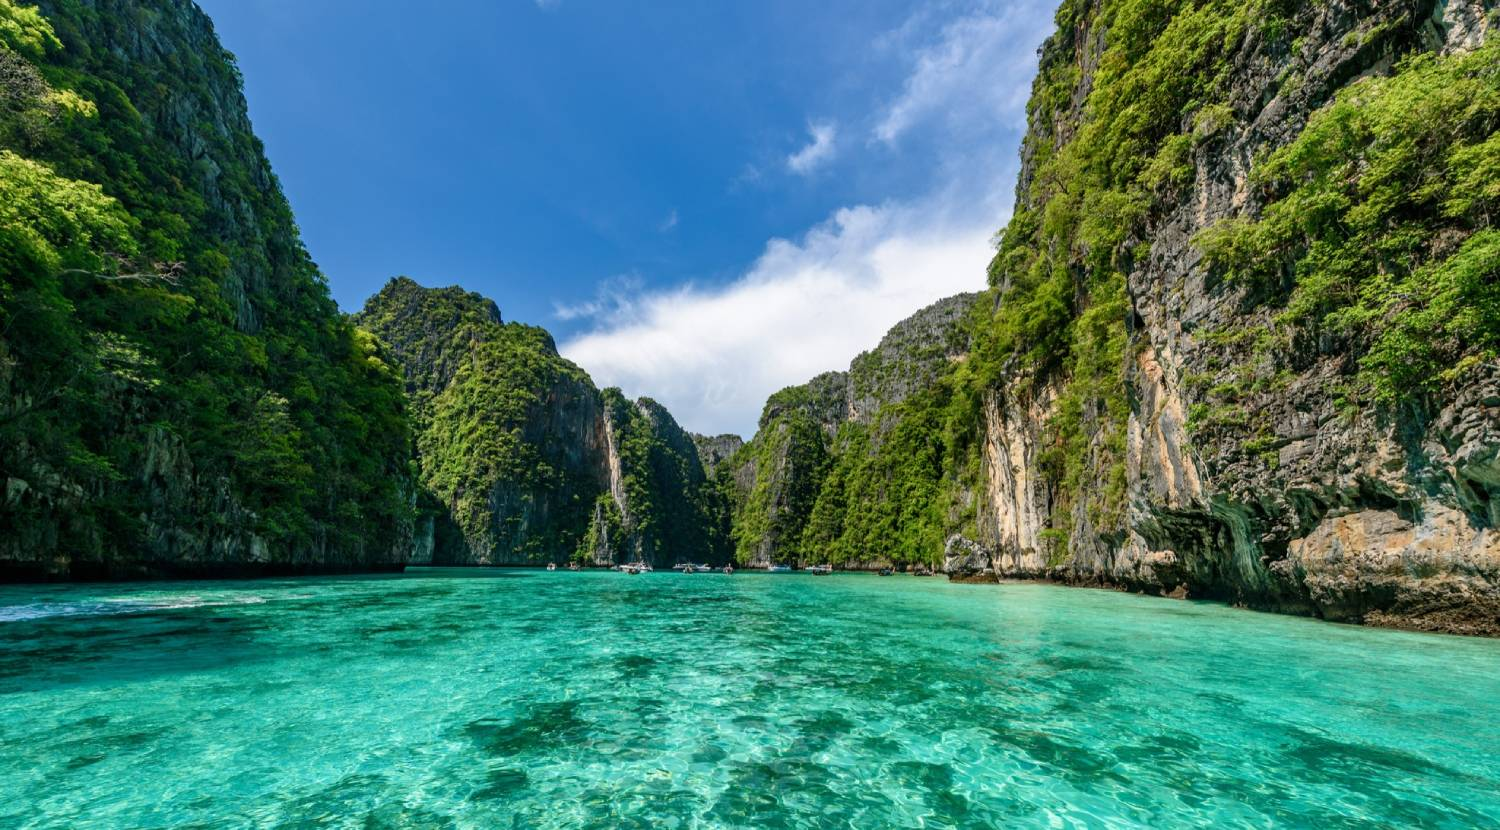 Phi Phi Islands - Things To Do In Thailand